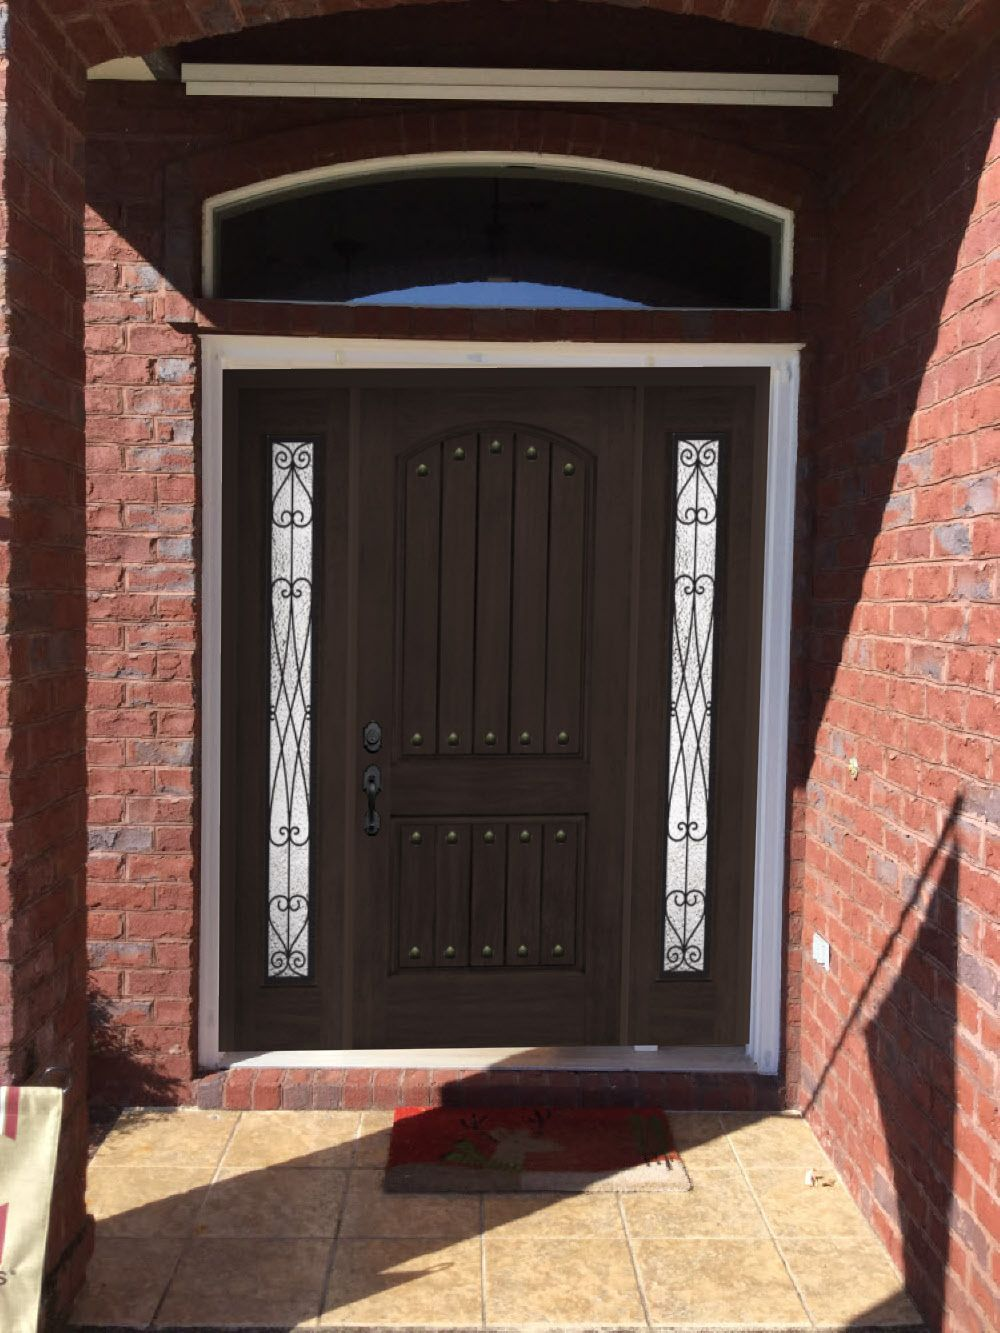 Take A Look At My Entry Door Project That I Created With Plastpro